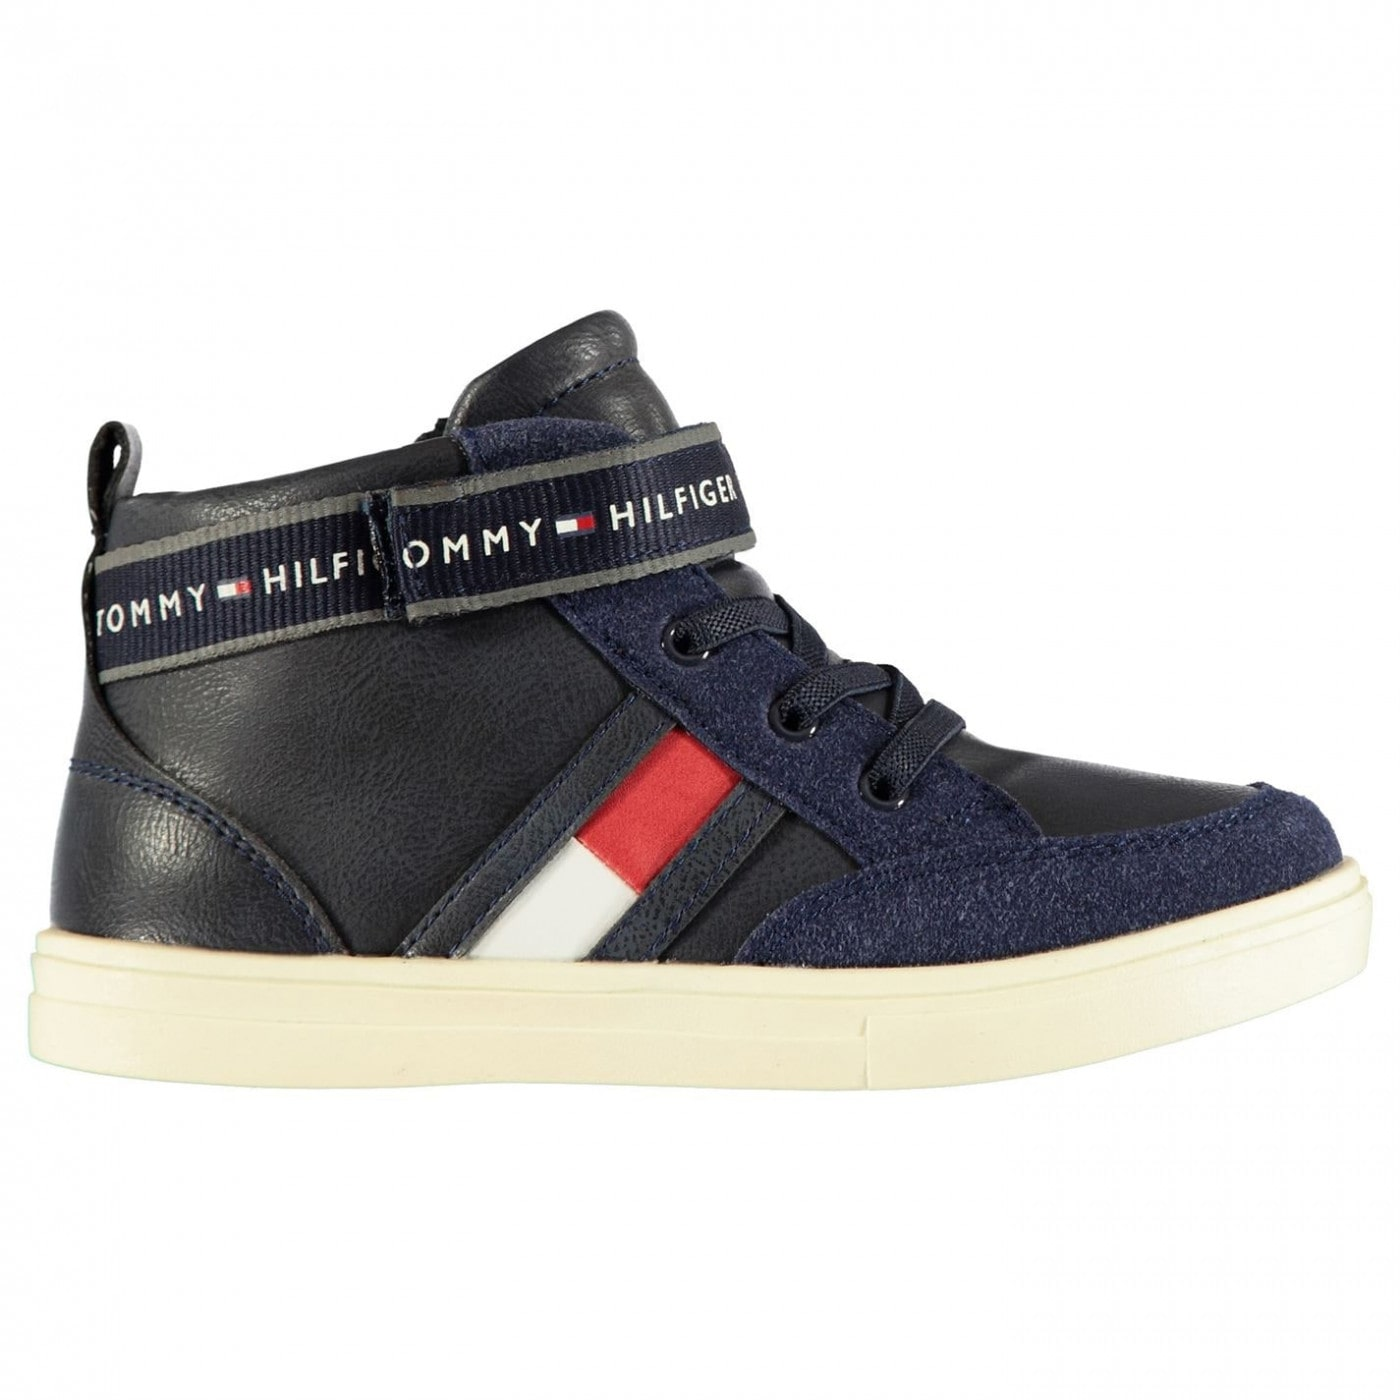 Tommy Hilfiger Strap Infant Boys High Top Trainers